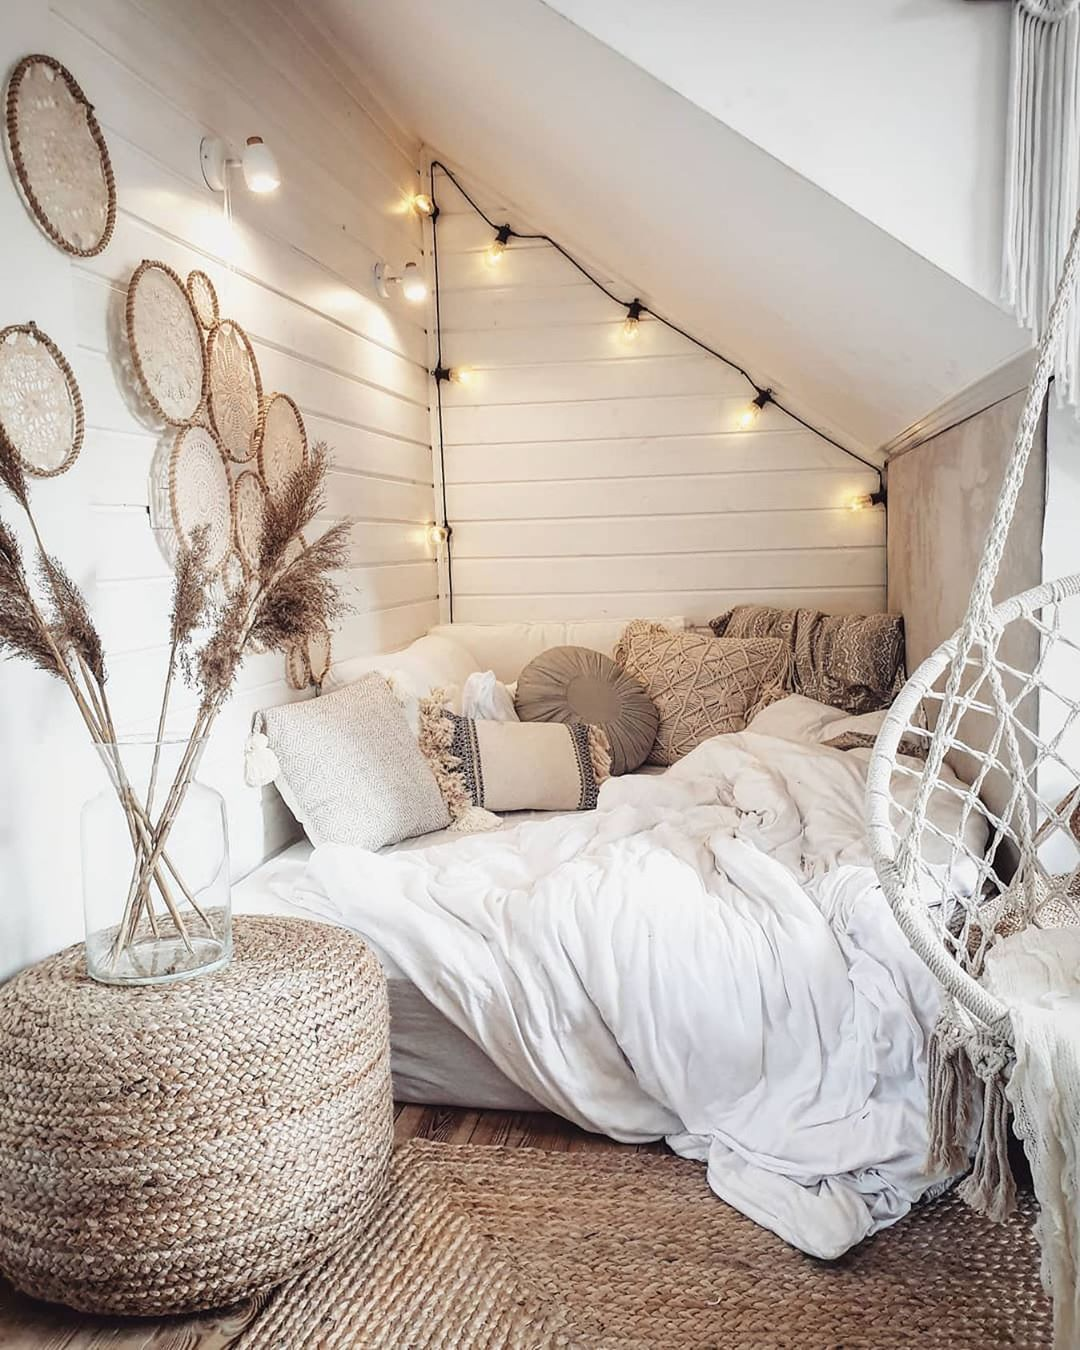 """Bedroom Goals! �� on Instagram: """"Wow this is amazing!� YAY or NAY?� Follow @mybedroomgoals for more! Photo from @marzena.marideko - - - - - - #beddingset #dreambedroom…"""""""